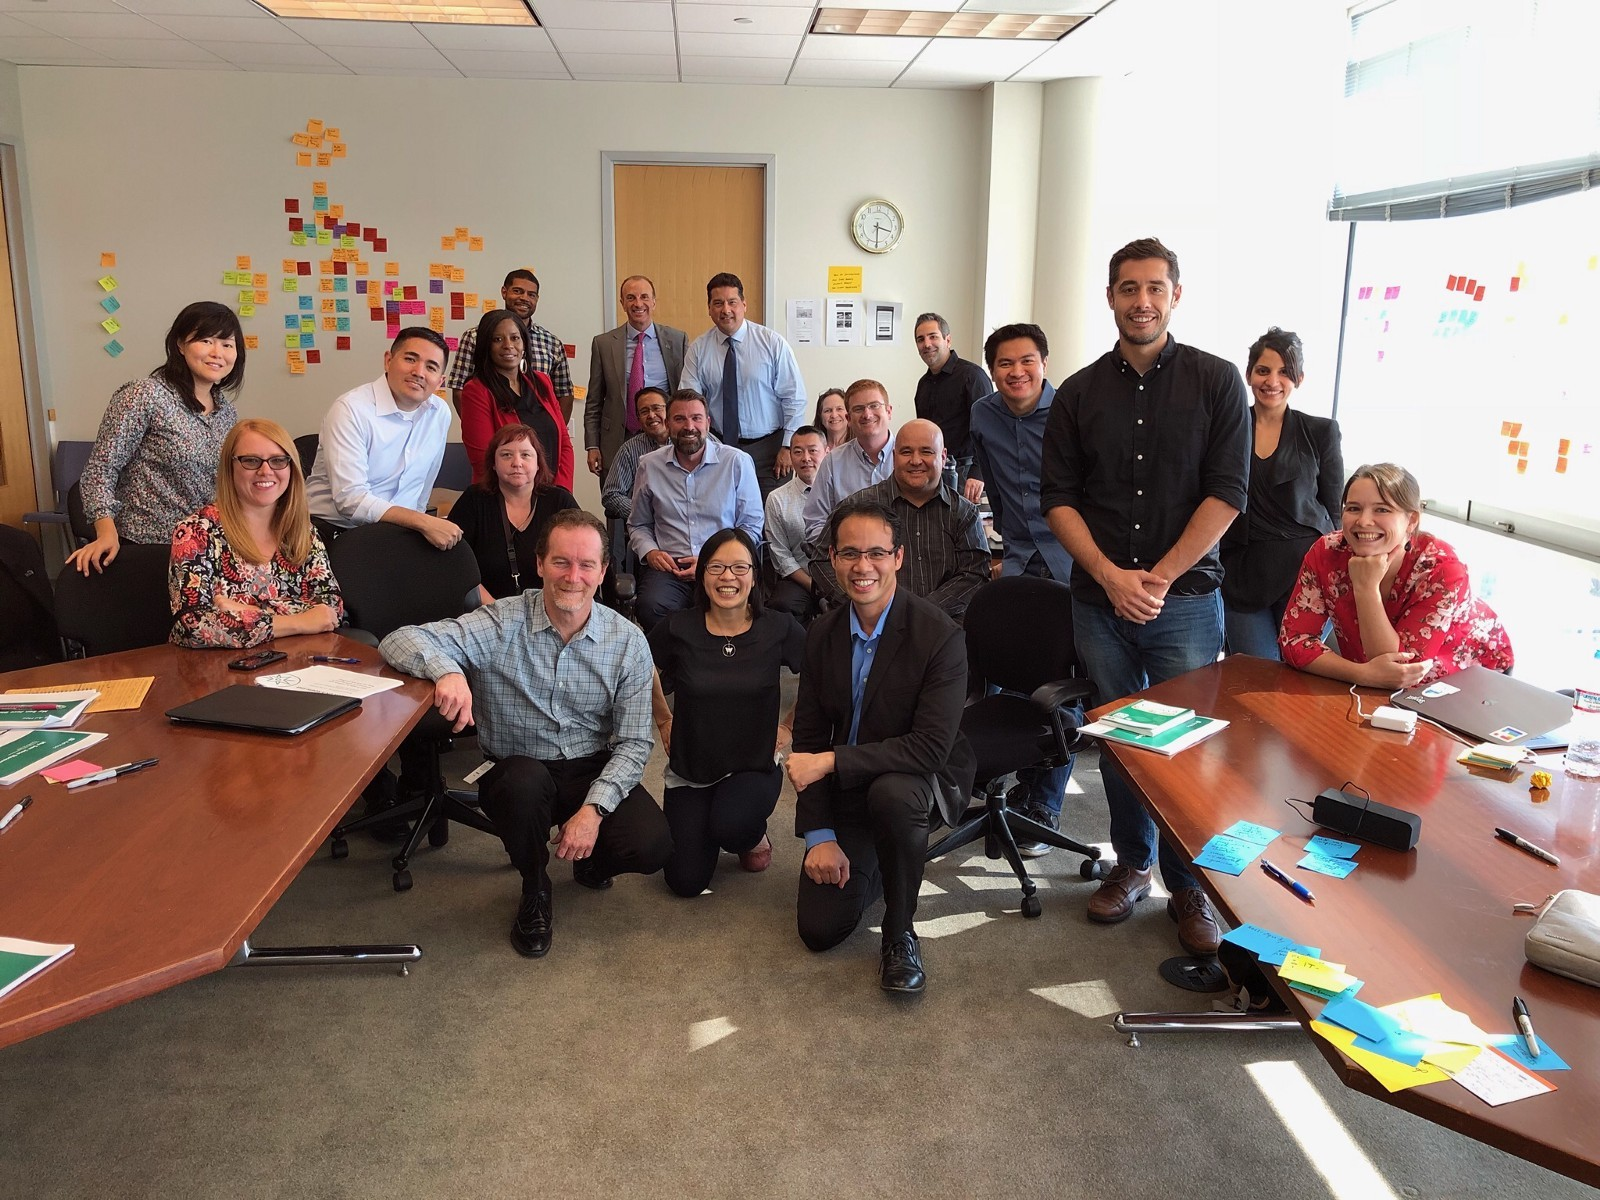 <p>All the staff members involved with running the My San Jose app. We might even be missing a few people!</p>